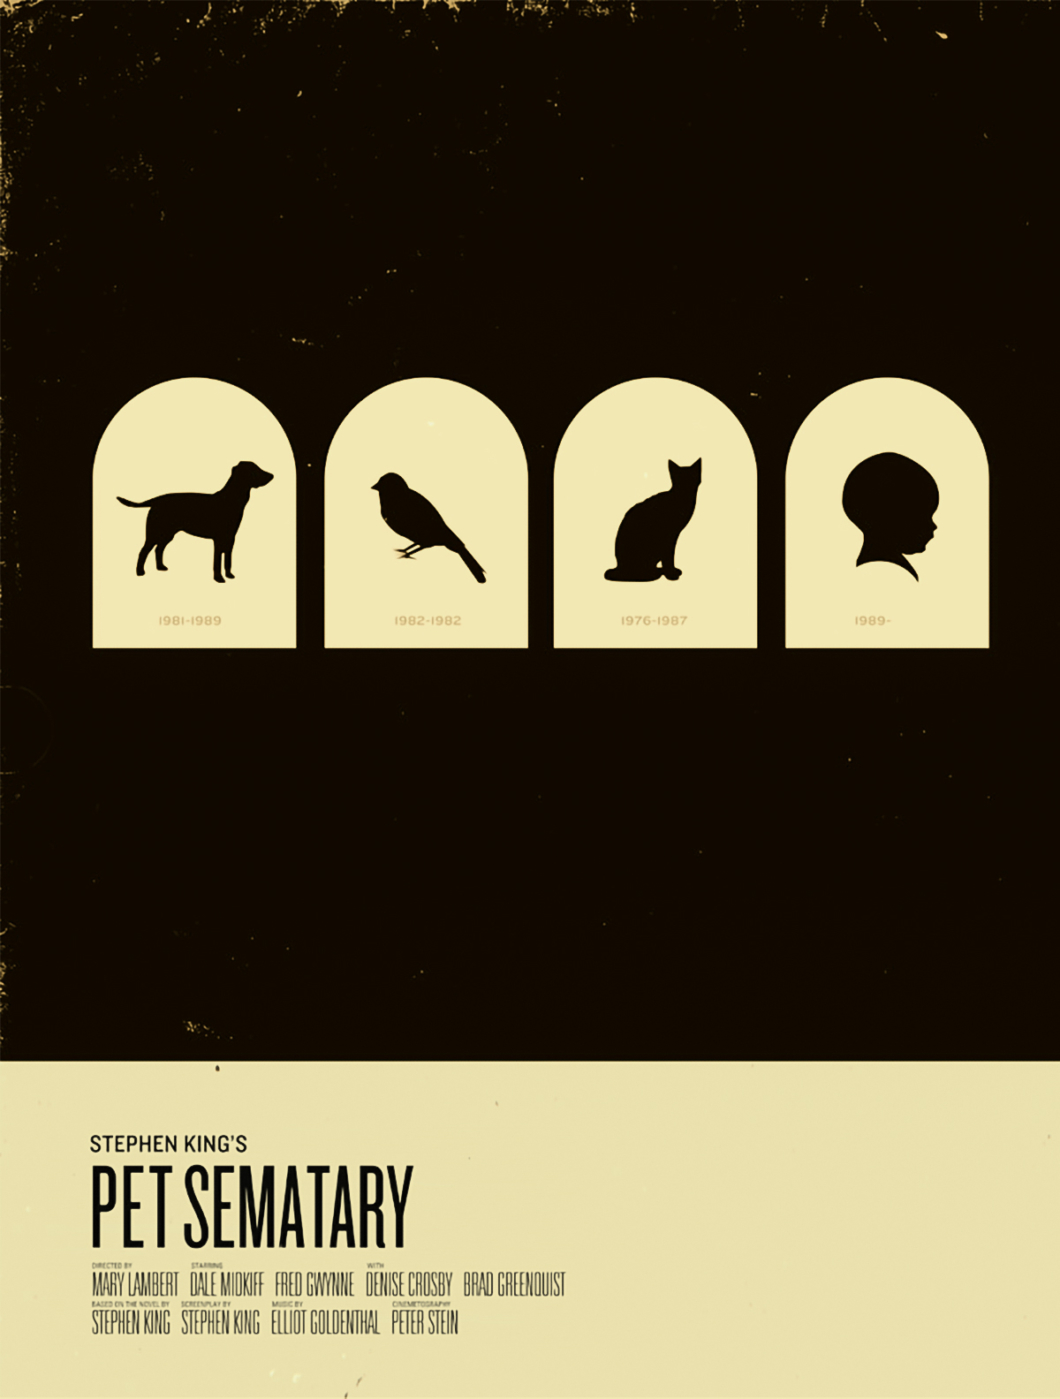 Stephen King Posters Pet Sematary